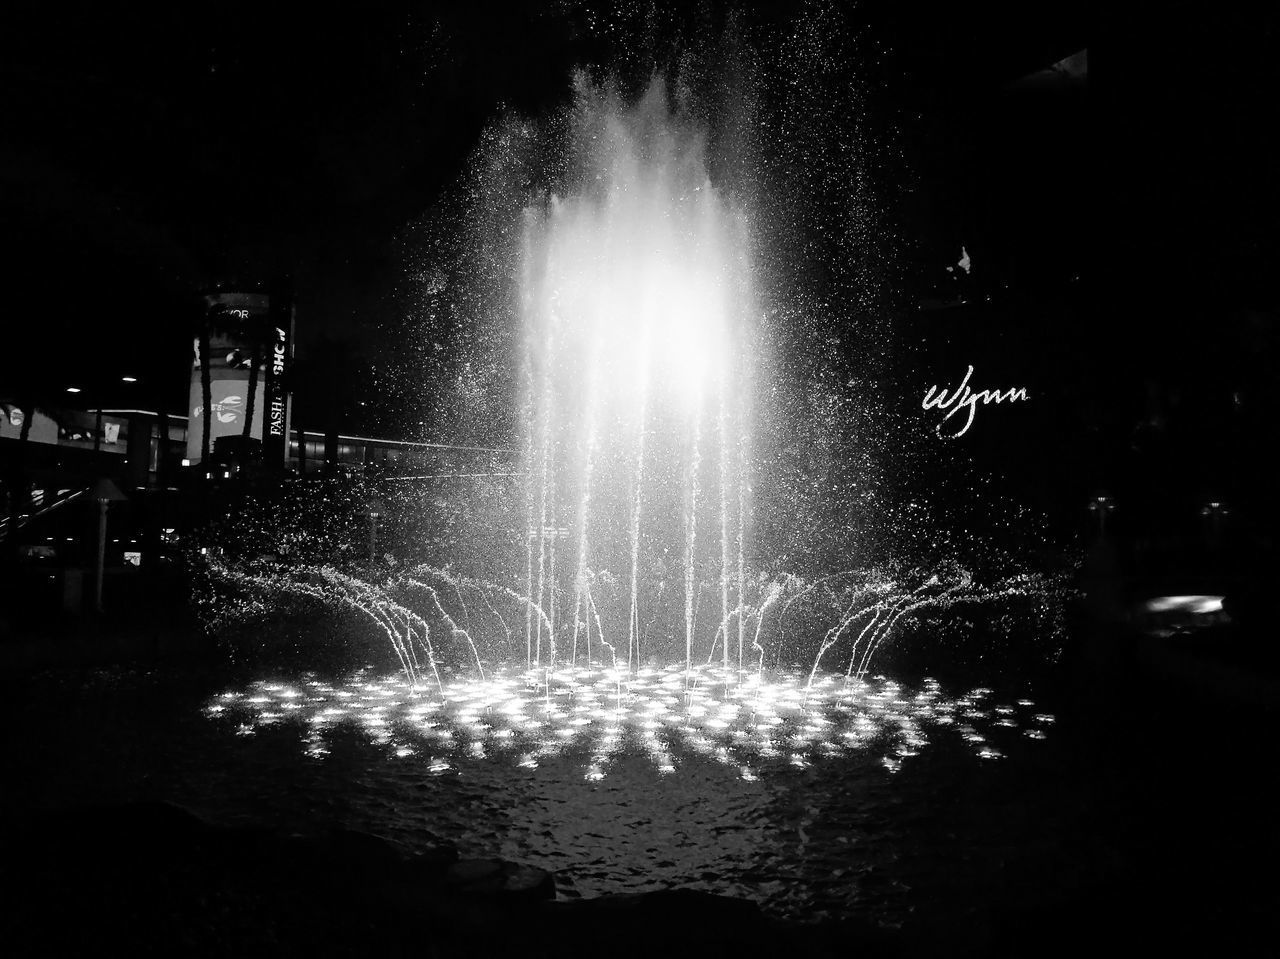 night, illuminated, glowing, motion, long exposure, no people, arts culture and entertainment, celebration, architecture, lighting equipment, water, nature, outdoors, built structure, light, firework, city, fountain, street